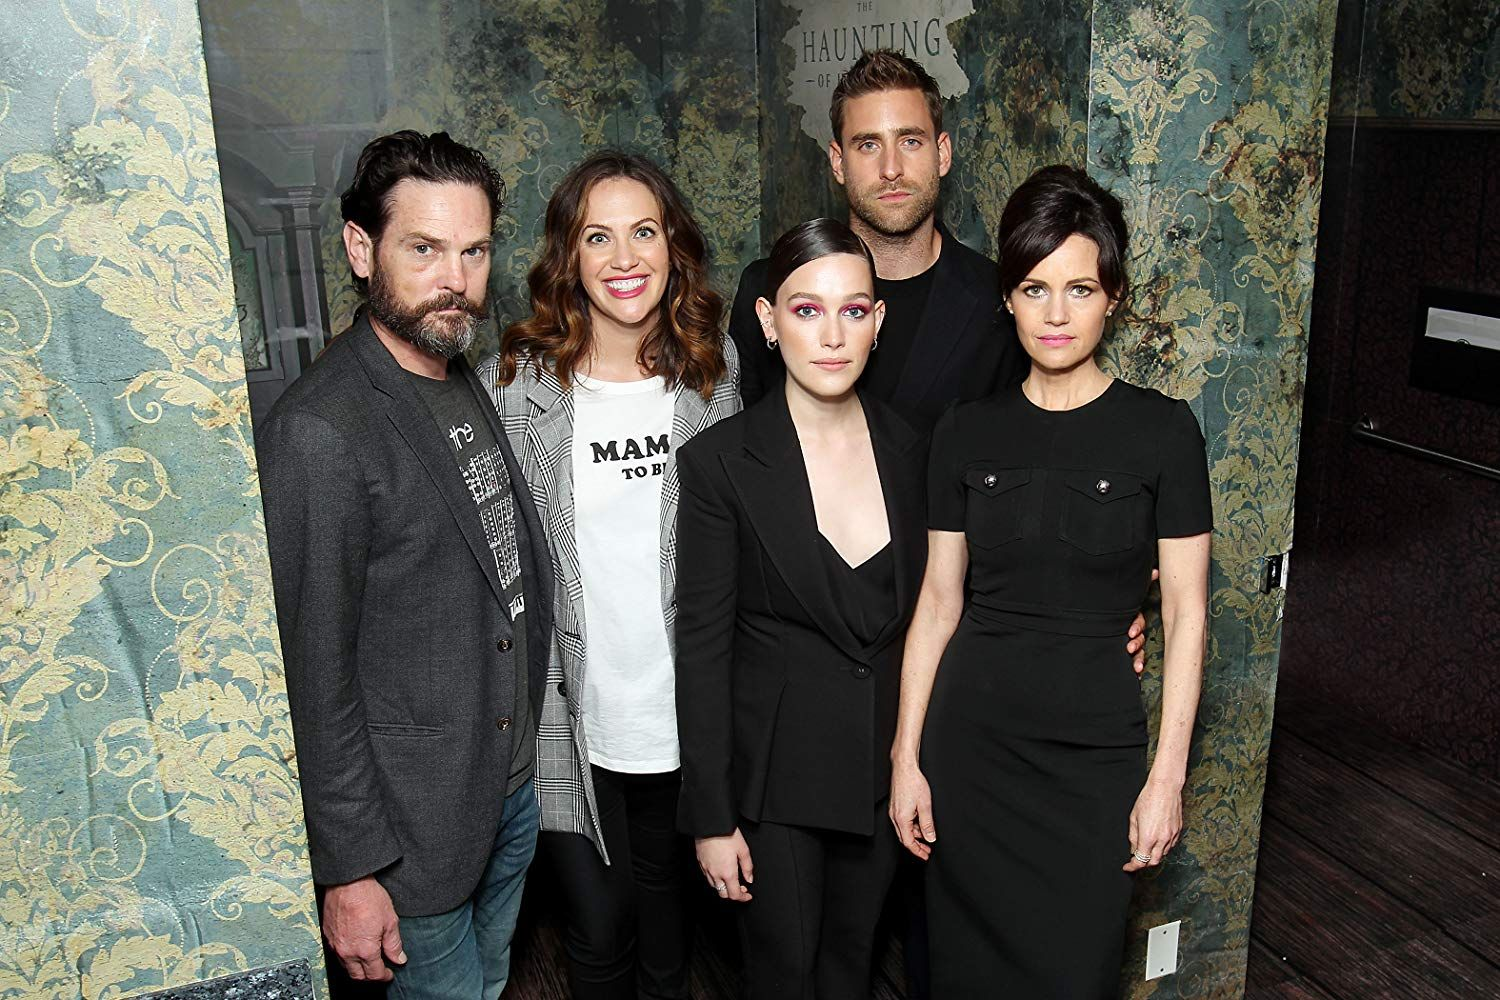 Carla Gugino Henry Thomas Kate Siegel Oliver Jackson Cohen And Victoria Pedretti At An Event For The Haunt Carla Gugino Oliver Jackson Cohen Horror Novella